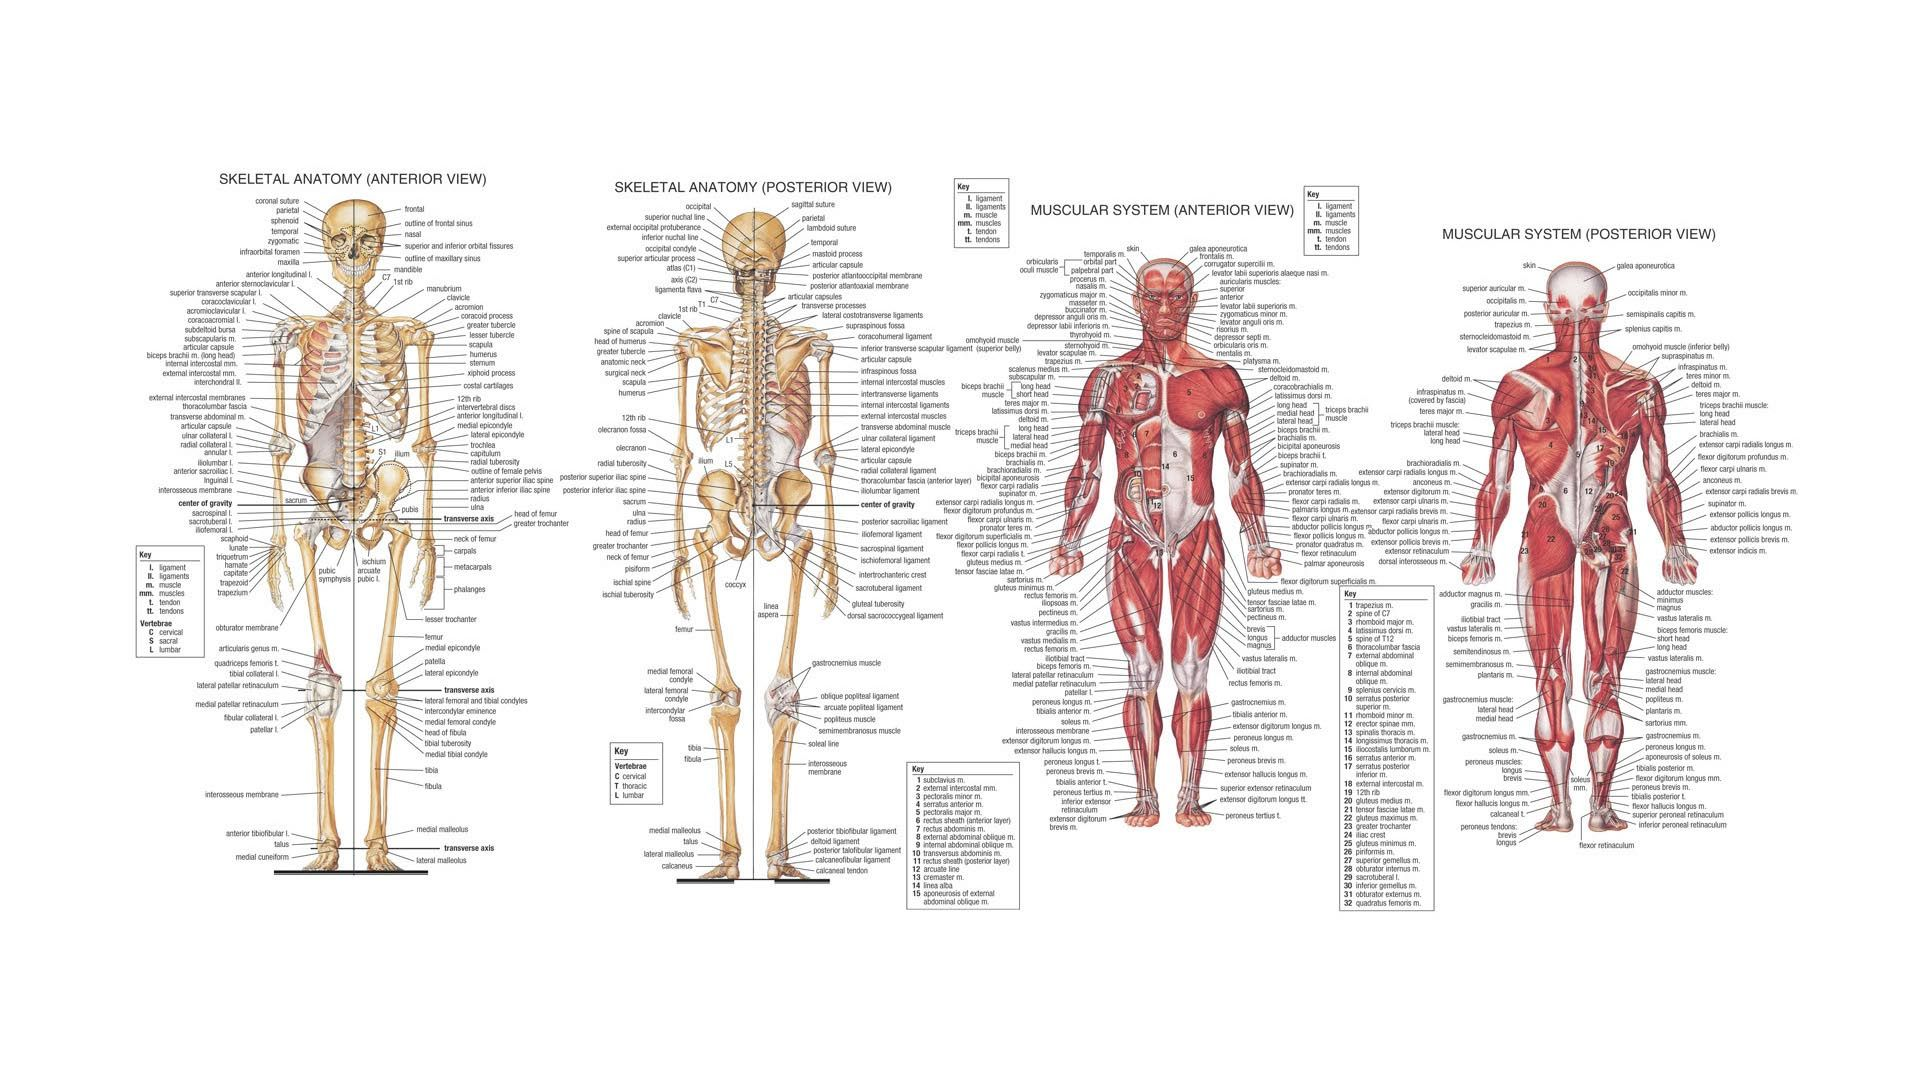 Anatomy Of Body  Human Anatomy Hd Wallpaper  Fullhdwpp  Full Hd